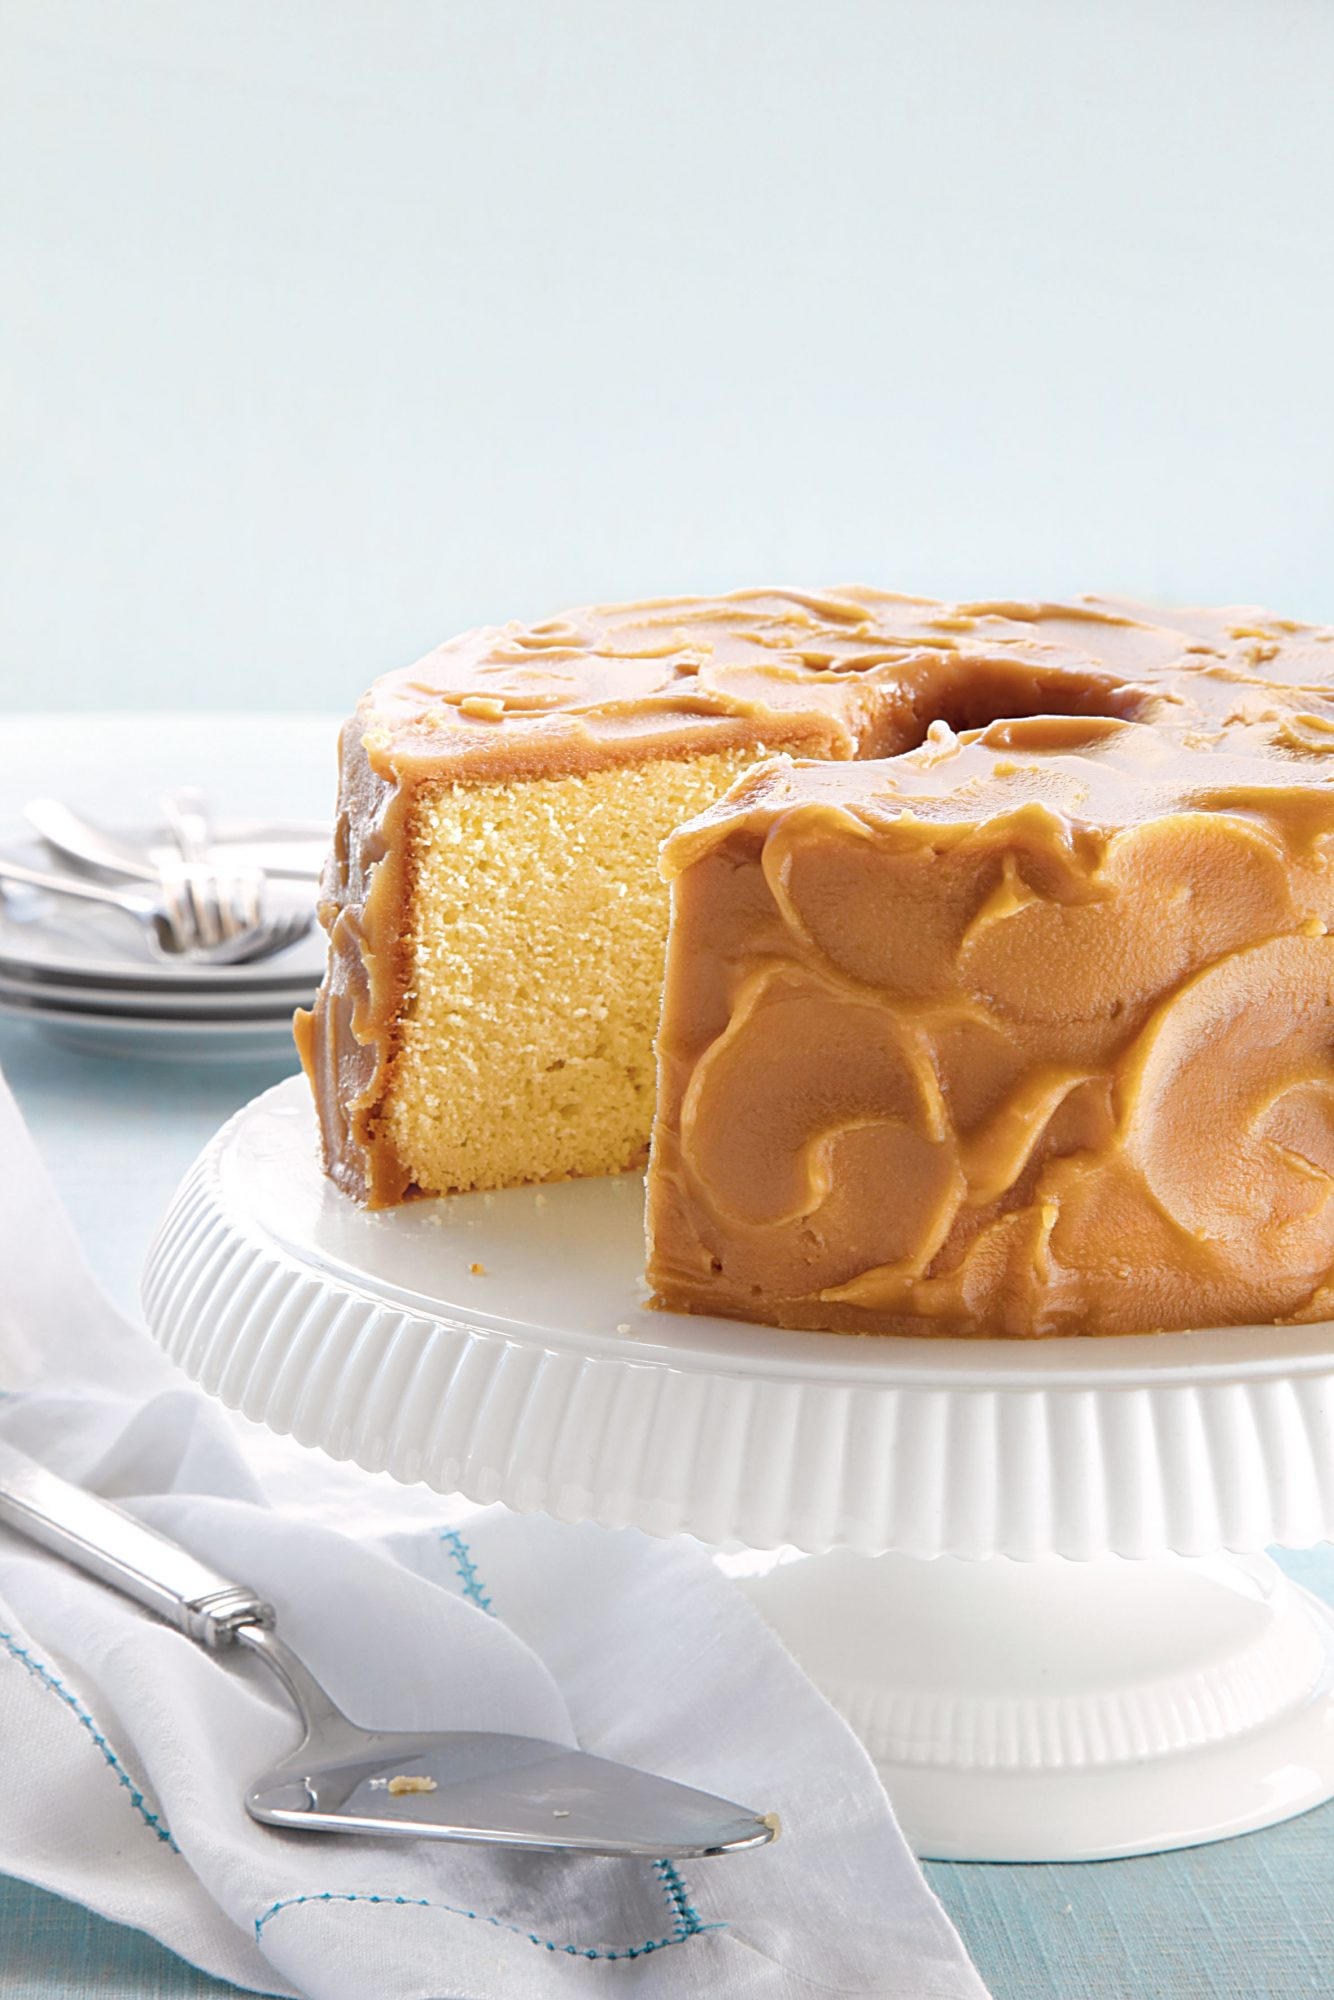 October: Caramel-Frosted Pound Cake